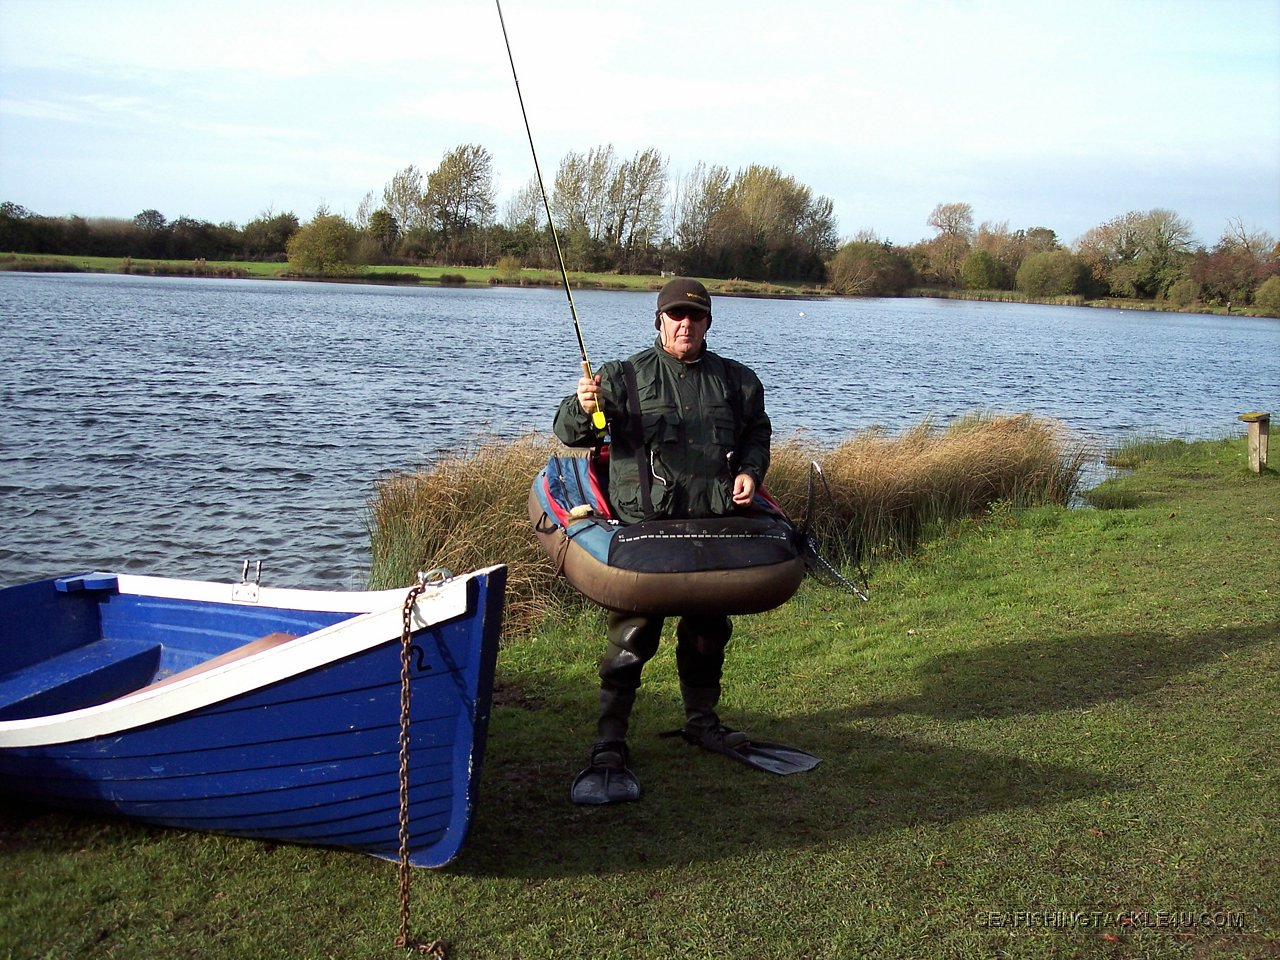 Fly fishing gallery sea fishing tackle and lure fishing for Fly fishing shop